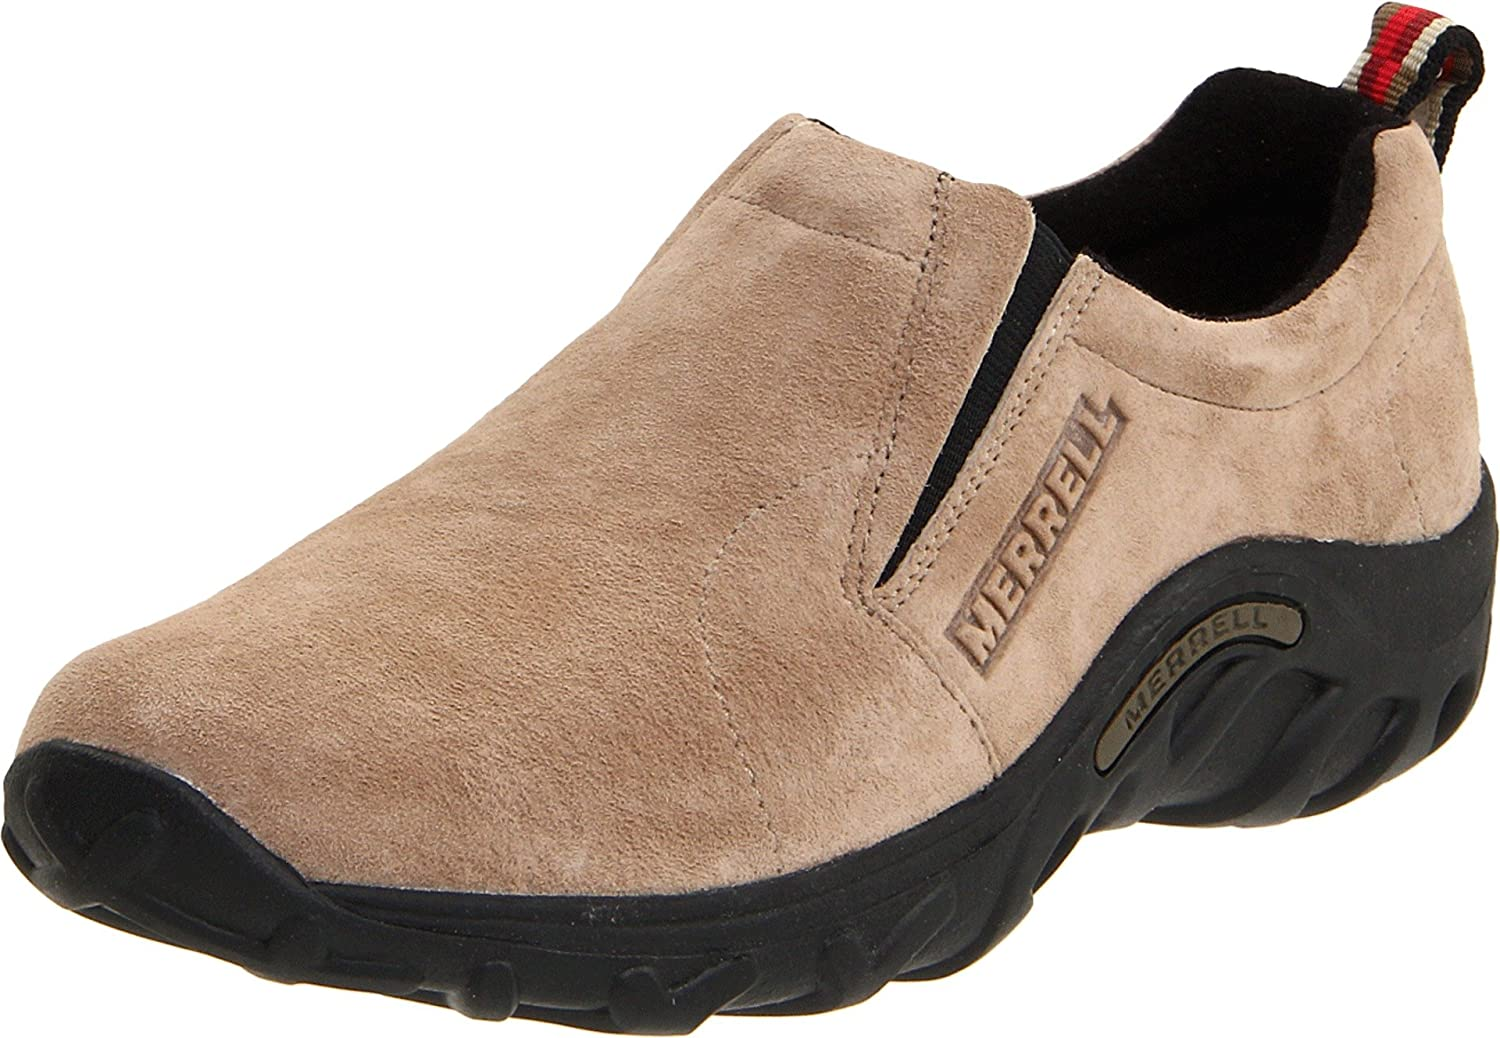 Merrell Jungle Moc (Toddler/Little Kid/Big Kid)